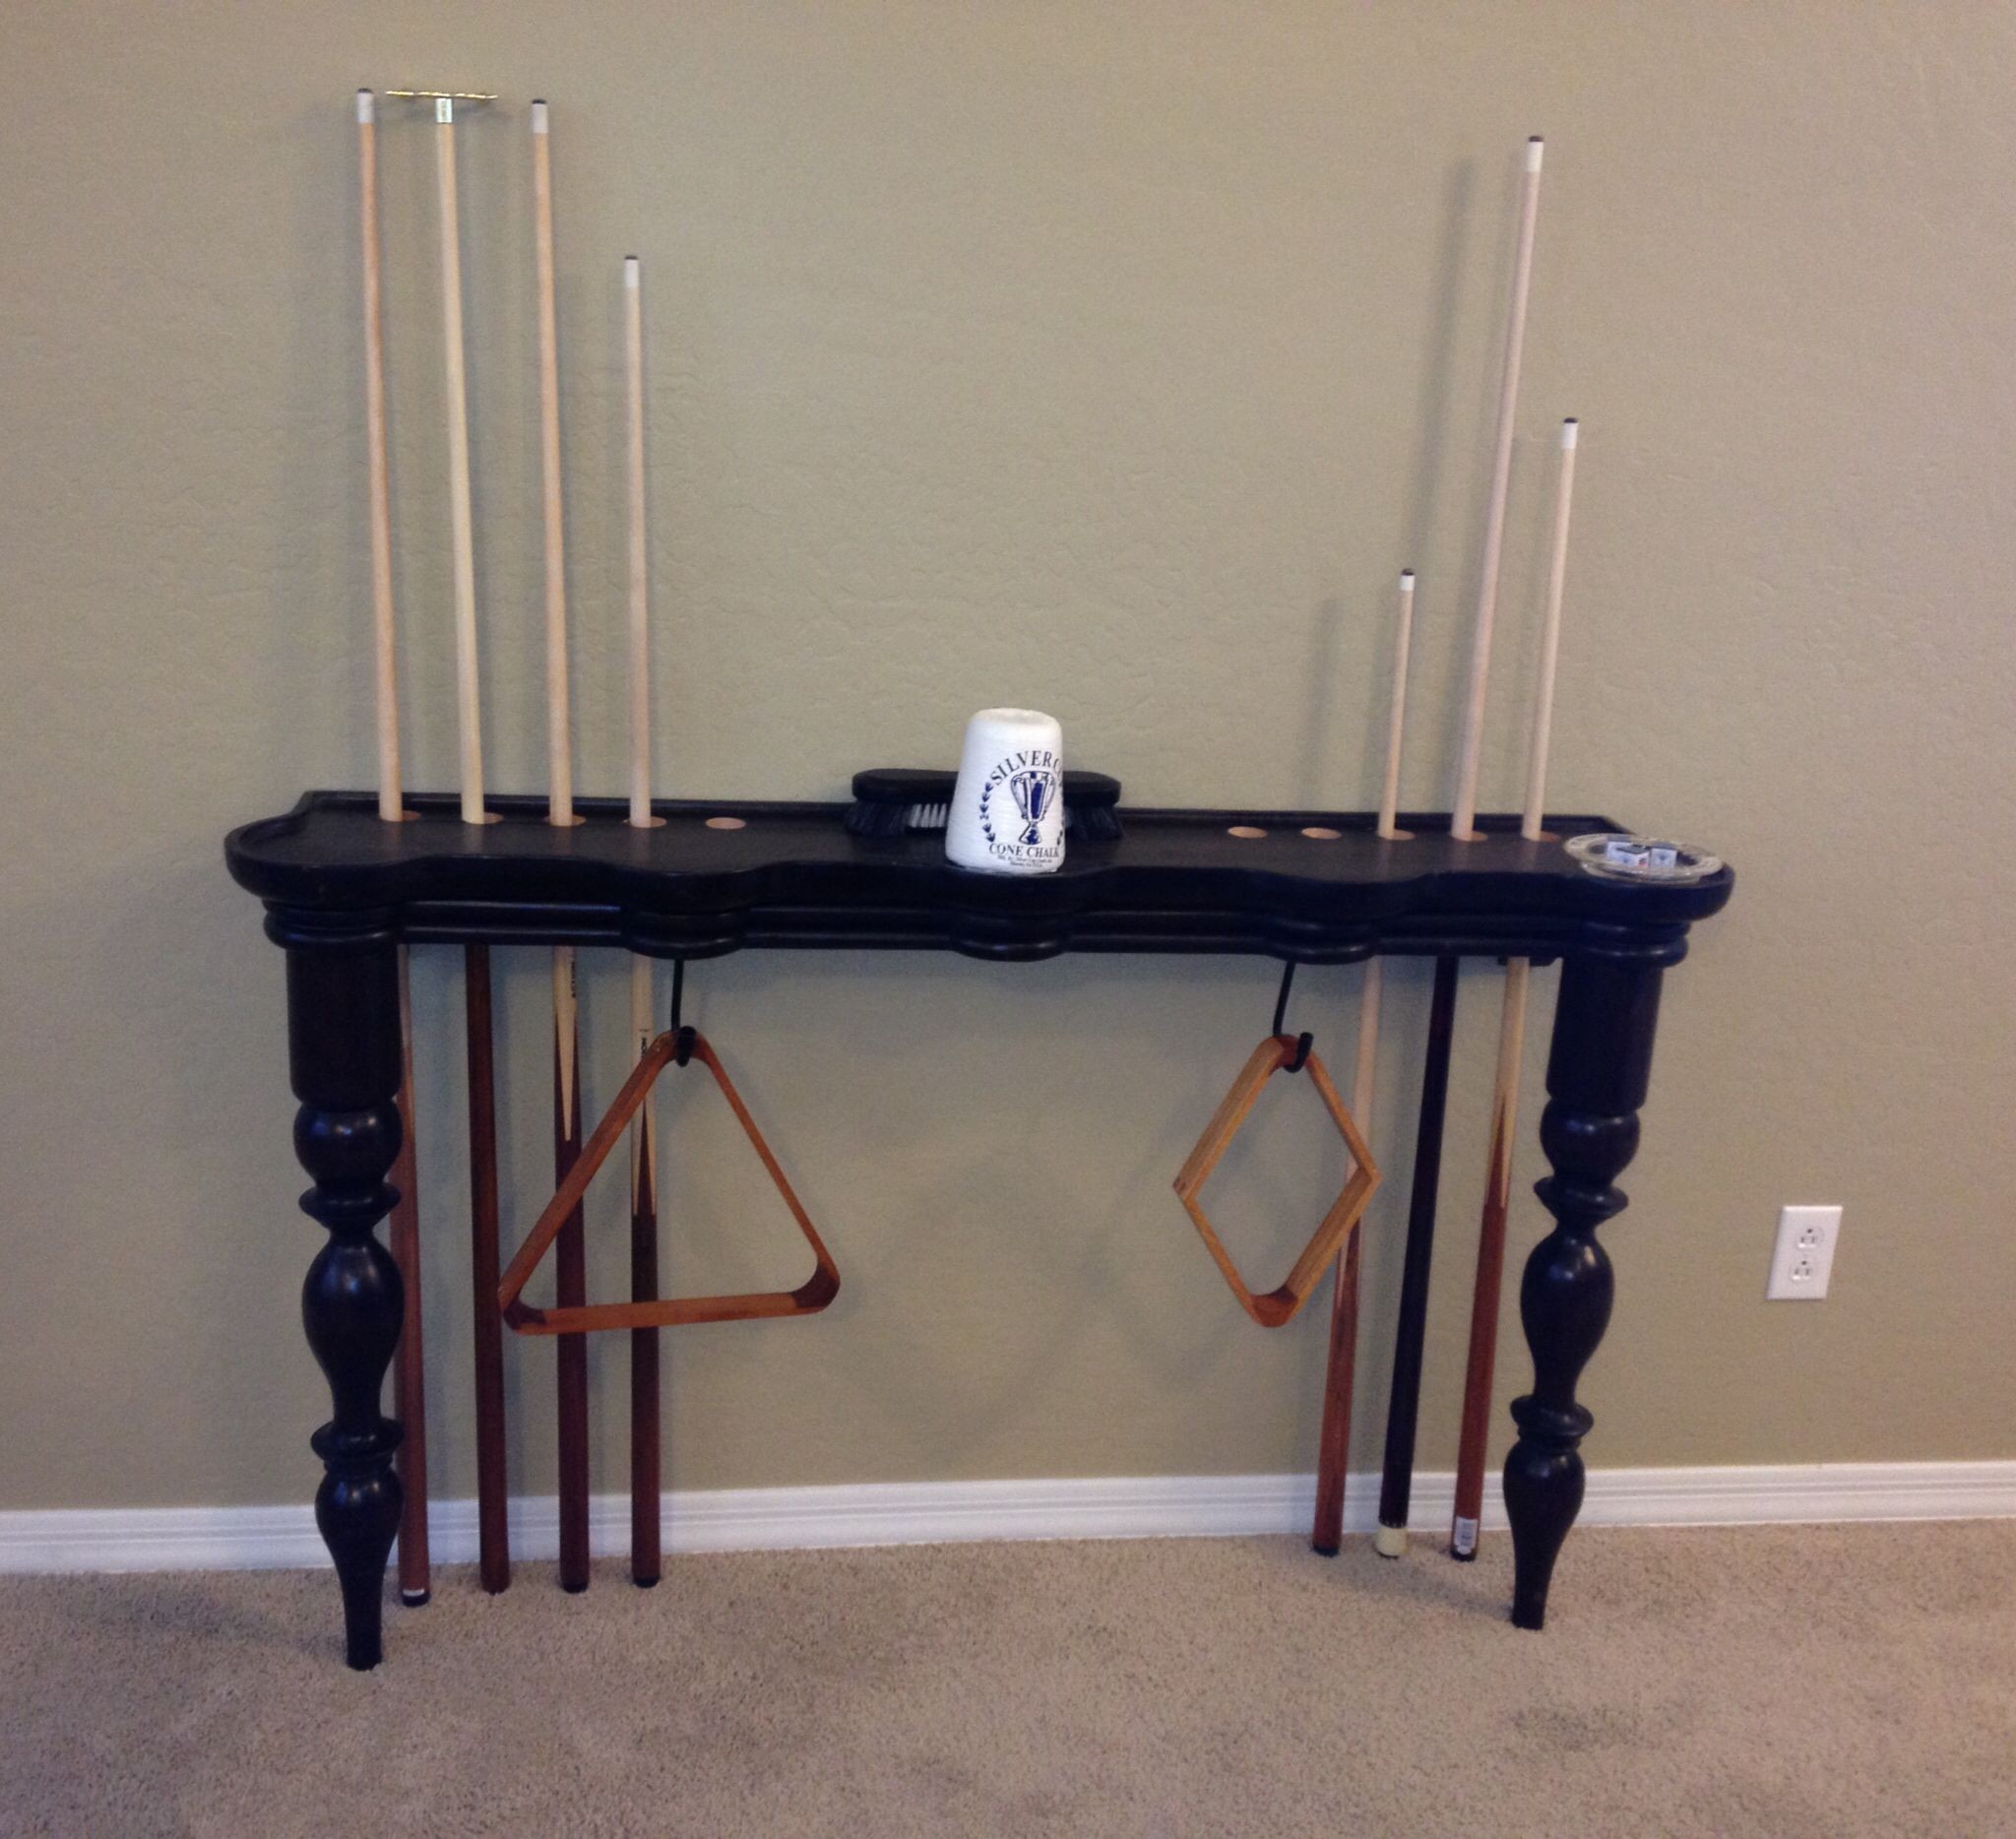 Pool cue stick holder made from modified sofa table ...